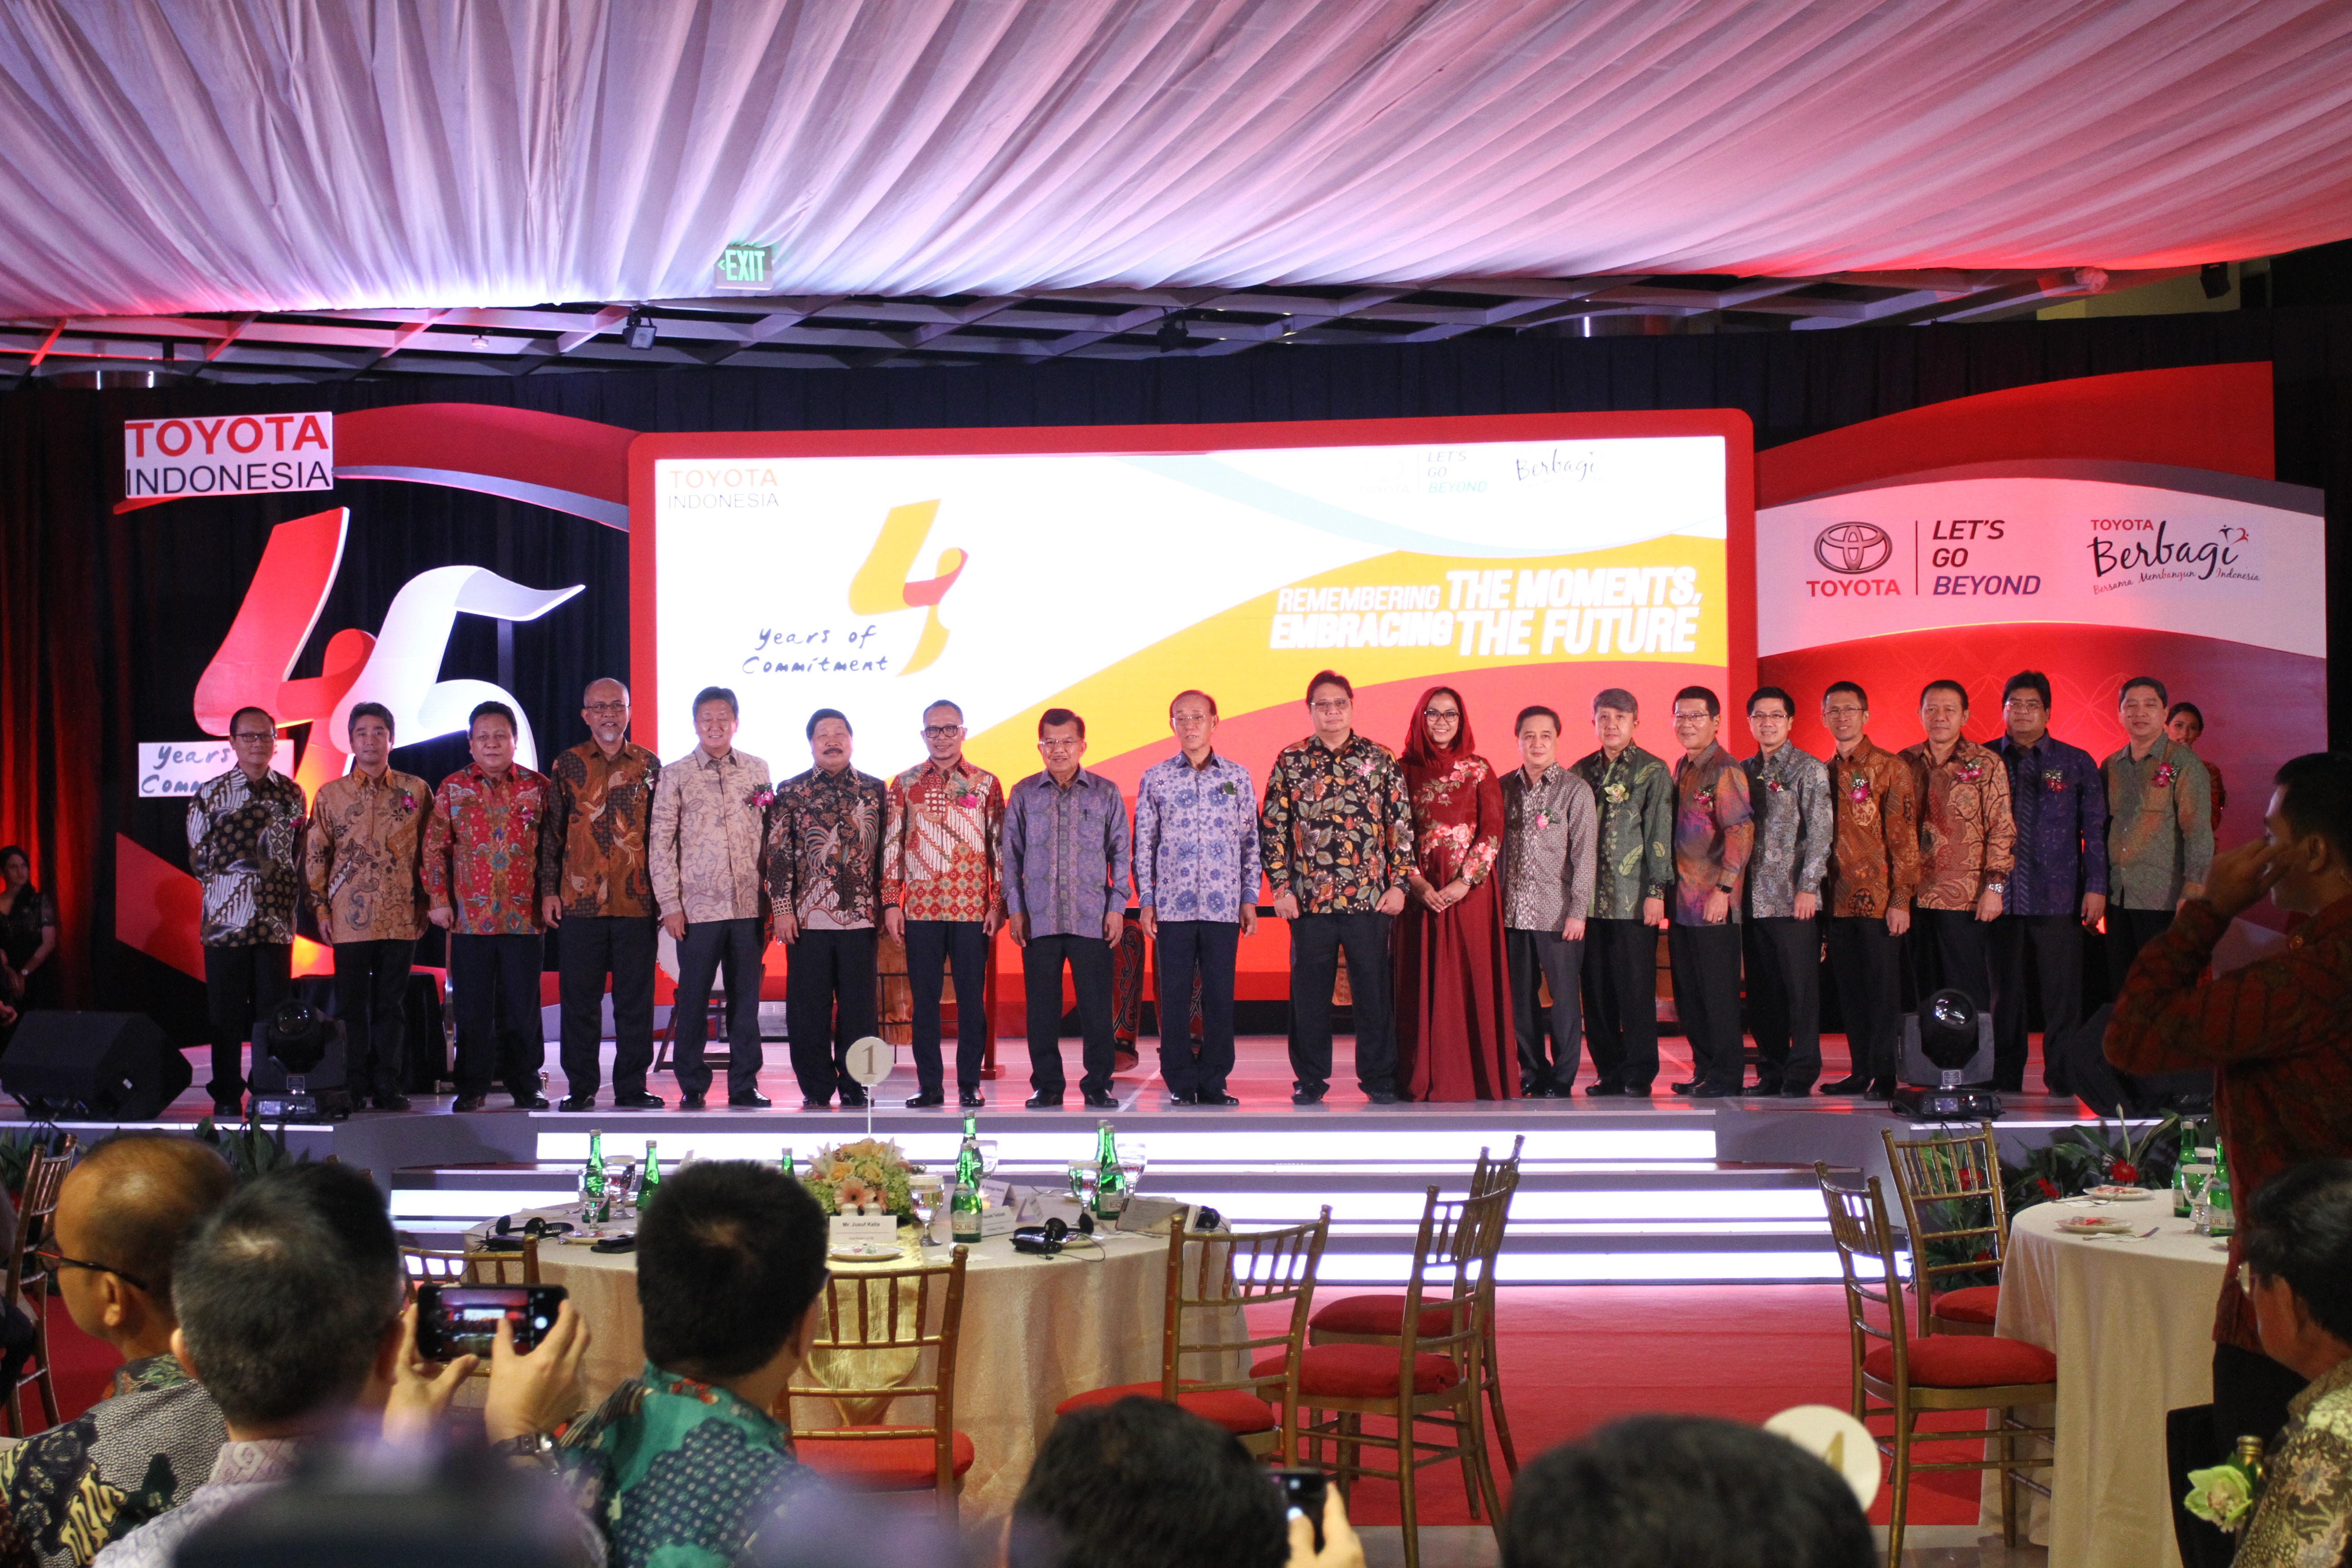 45 years of Toyota in Indonesia